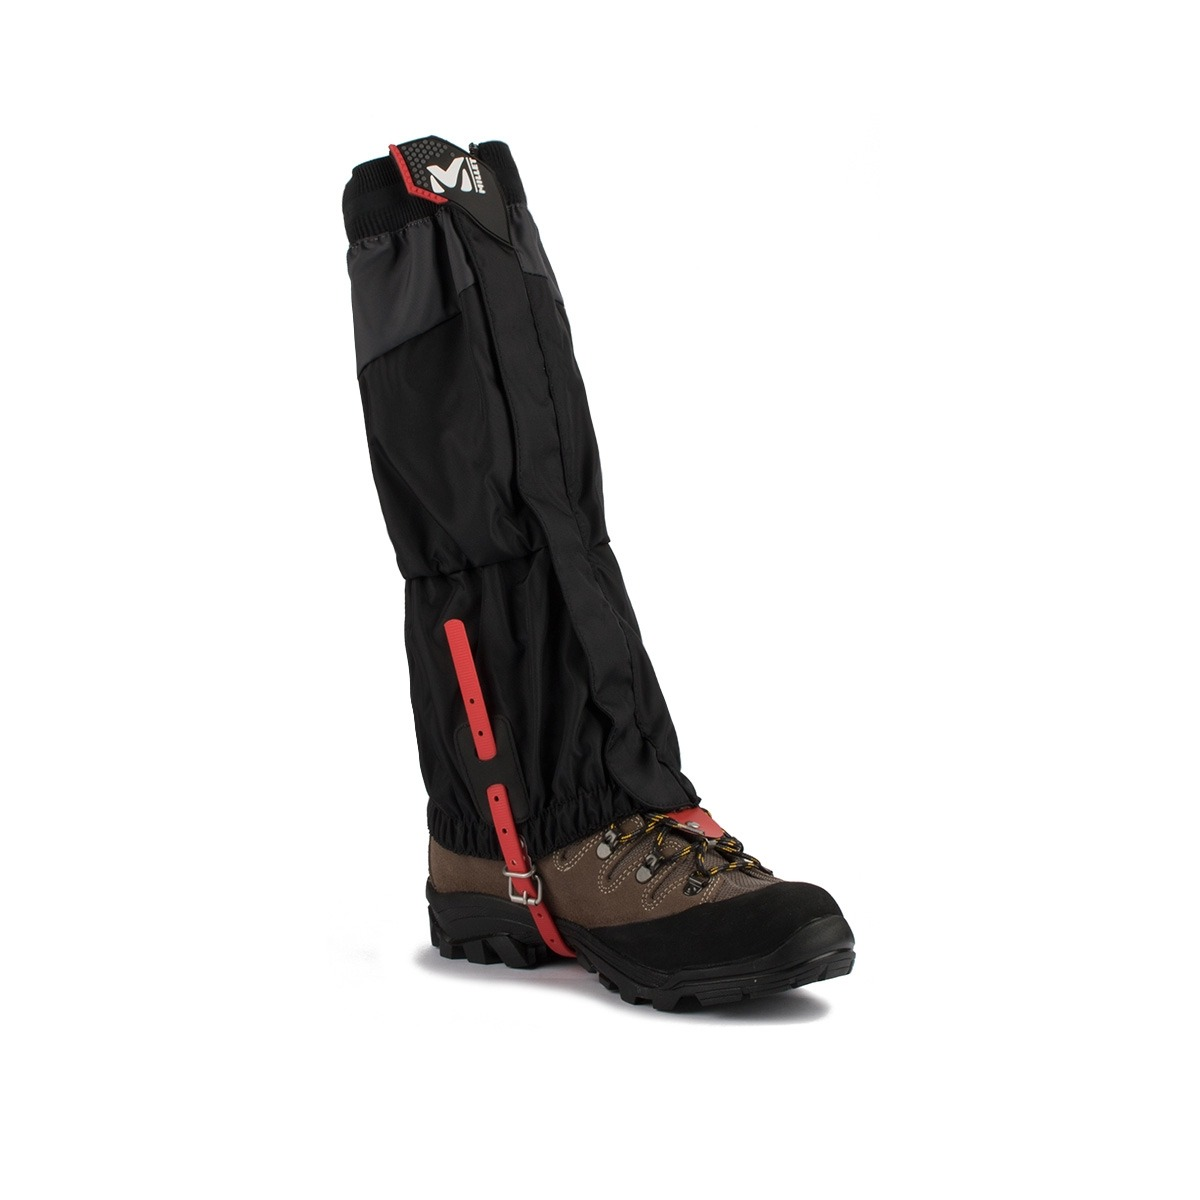 Millet polainas High Route Negro Rojo